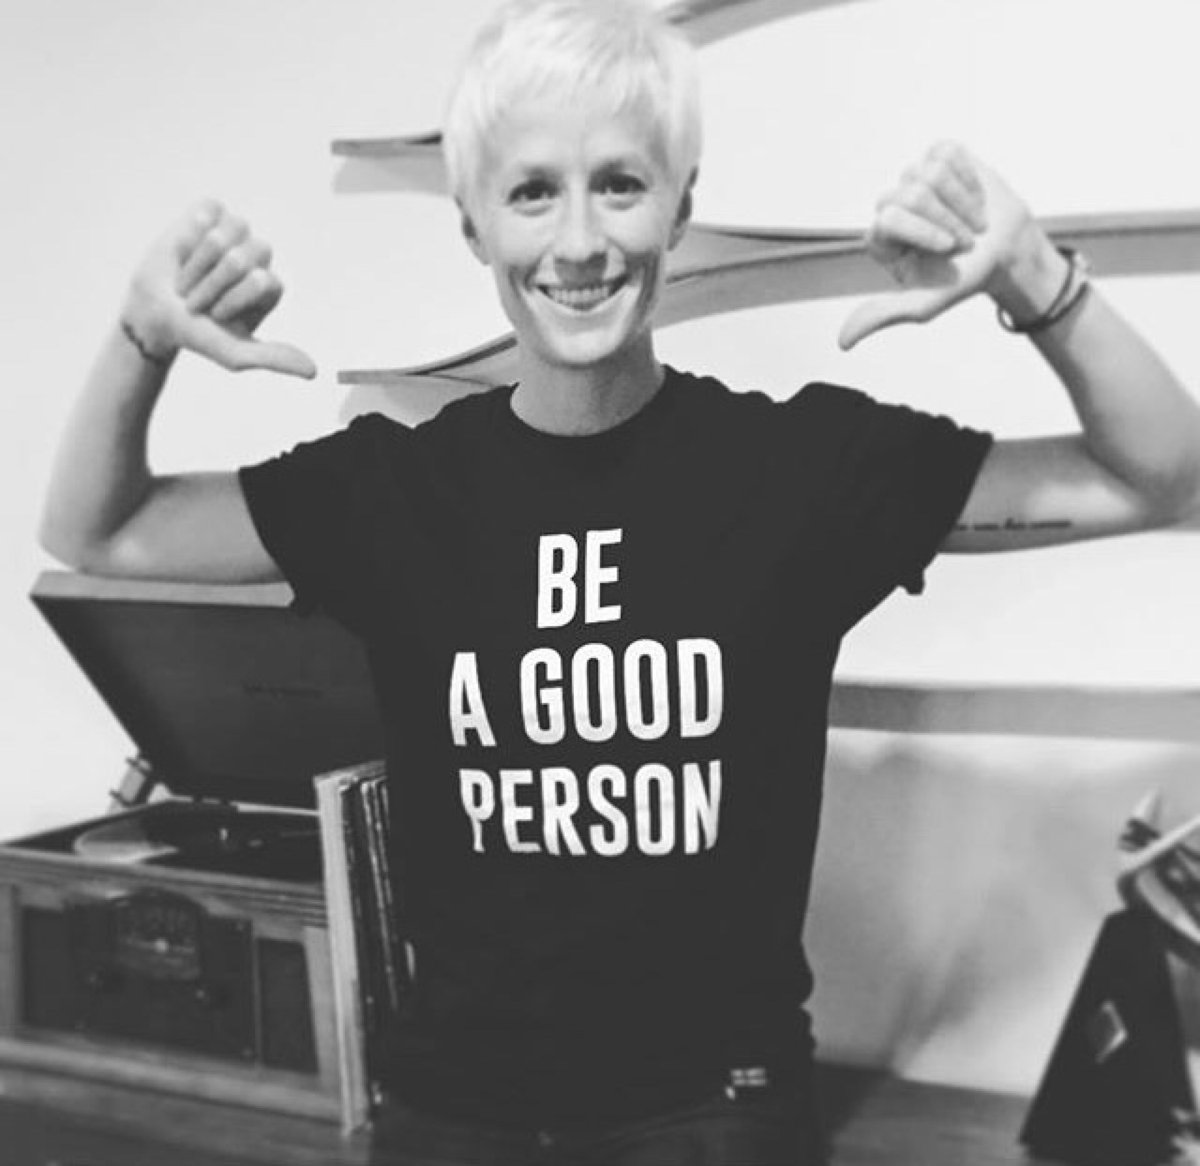 Megan Rapinoe fashion